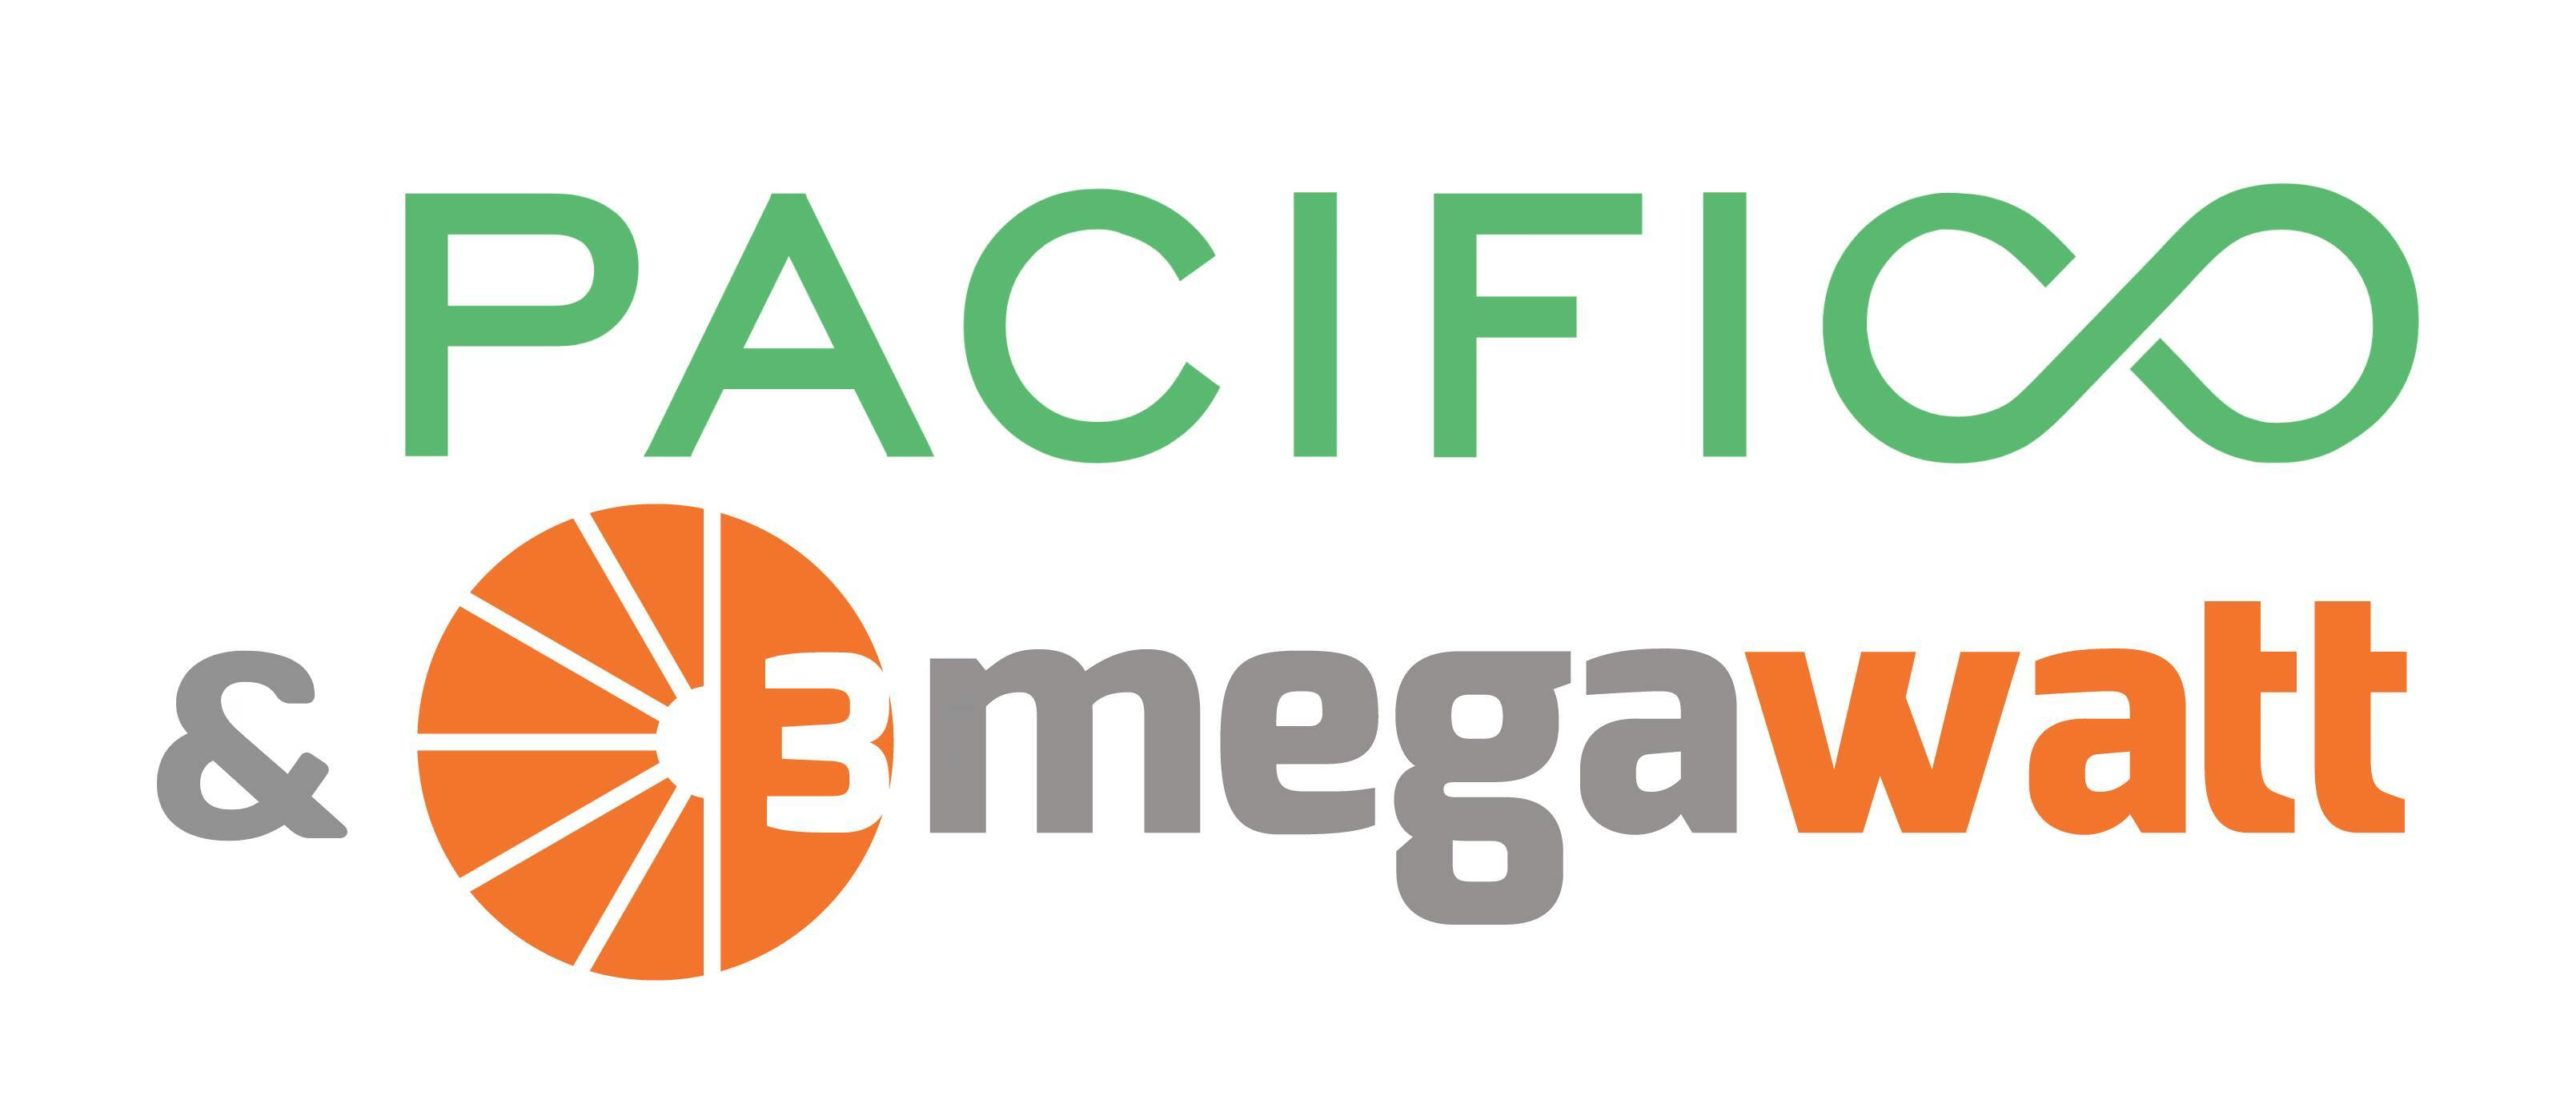 Pacifico will use 3megawatt's BluePoint software